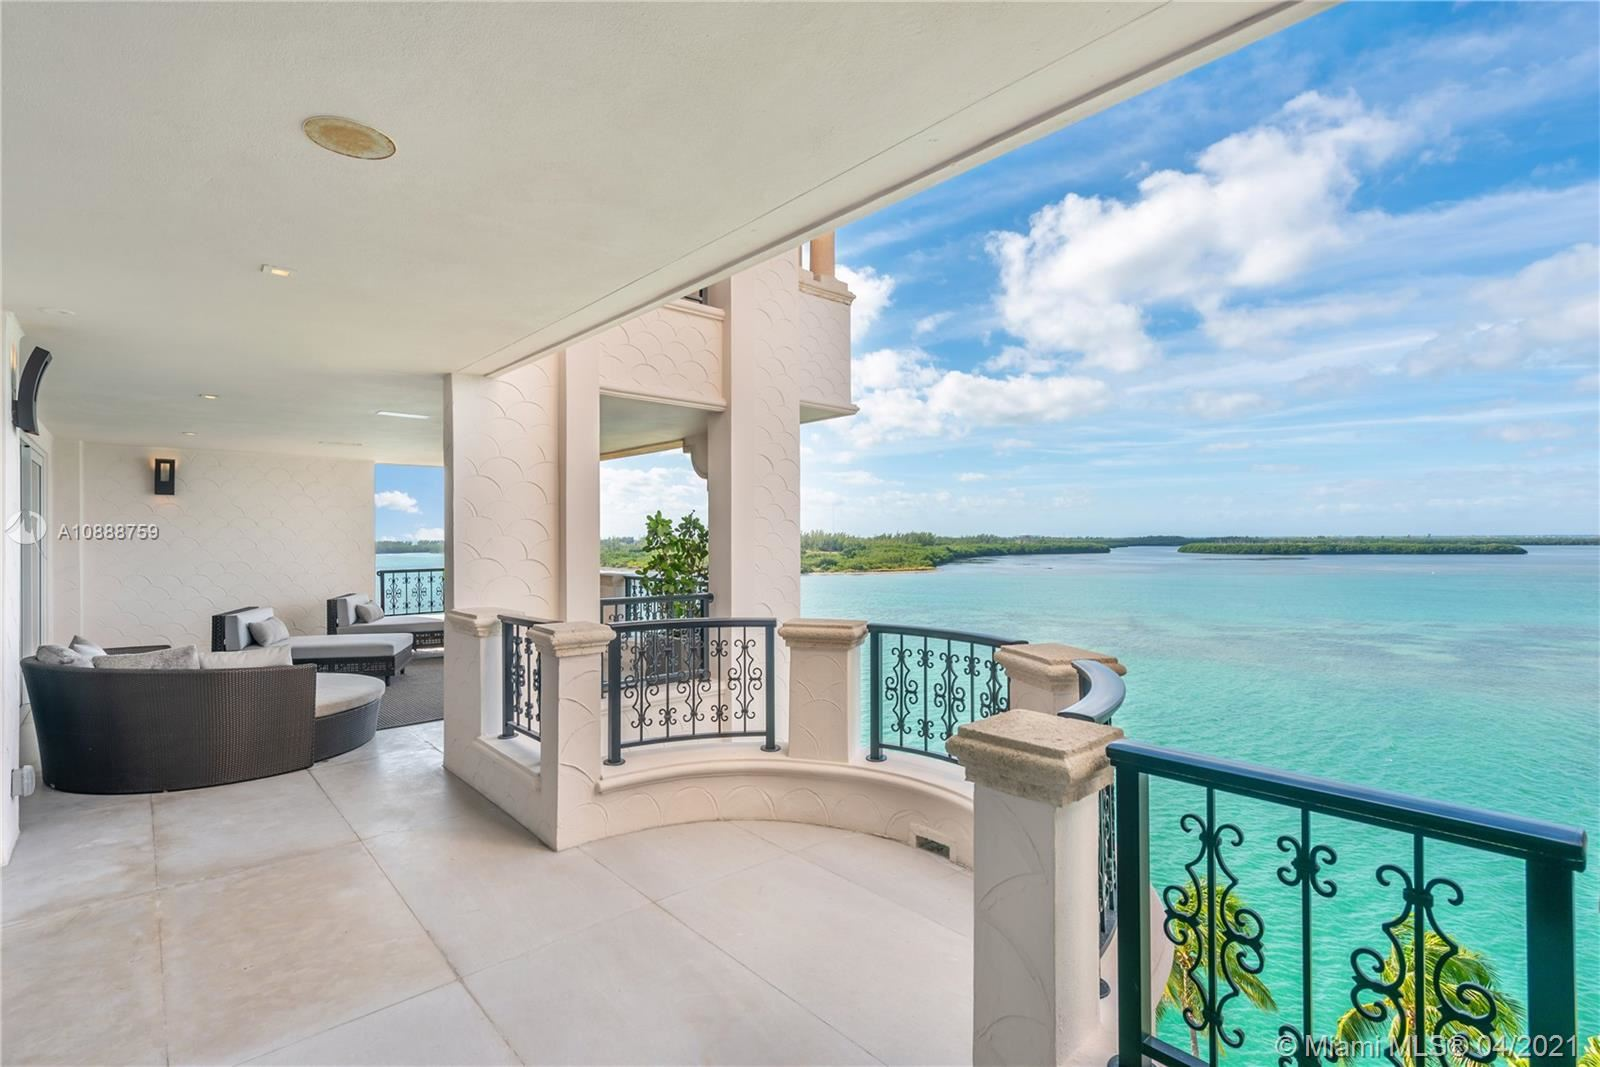 Photo 49 of Listing MLS a10888759 in 5282 Fisher Island Dr #5282 Miami FL 33109